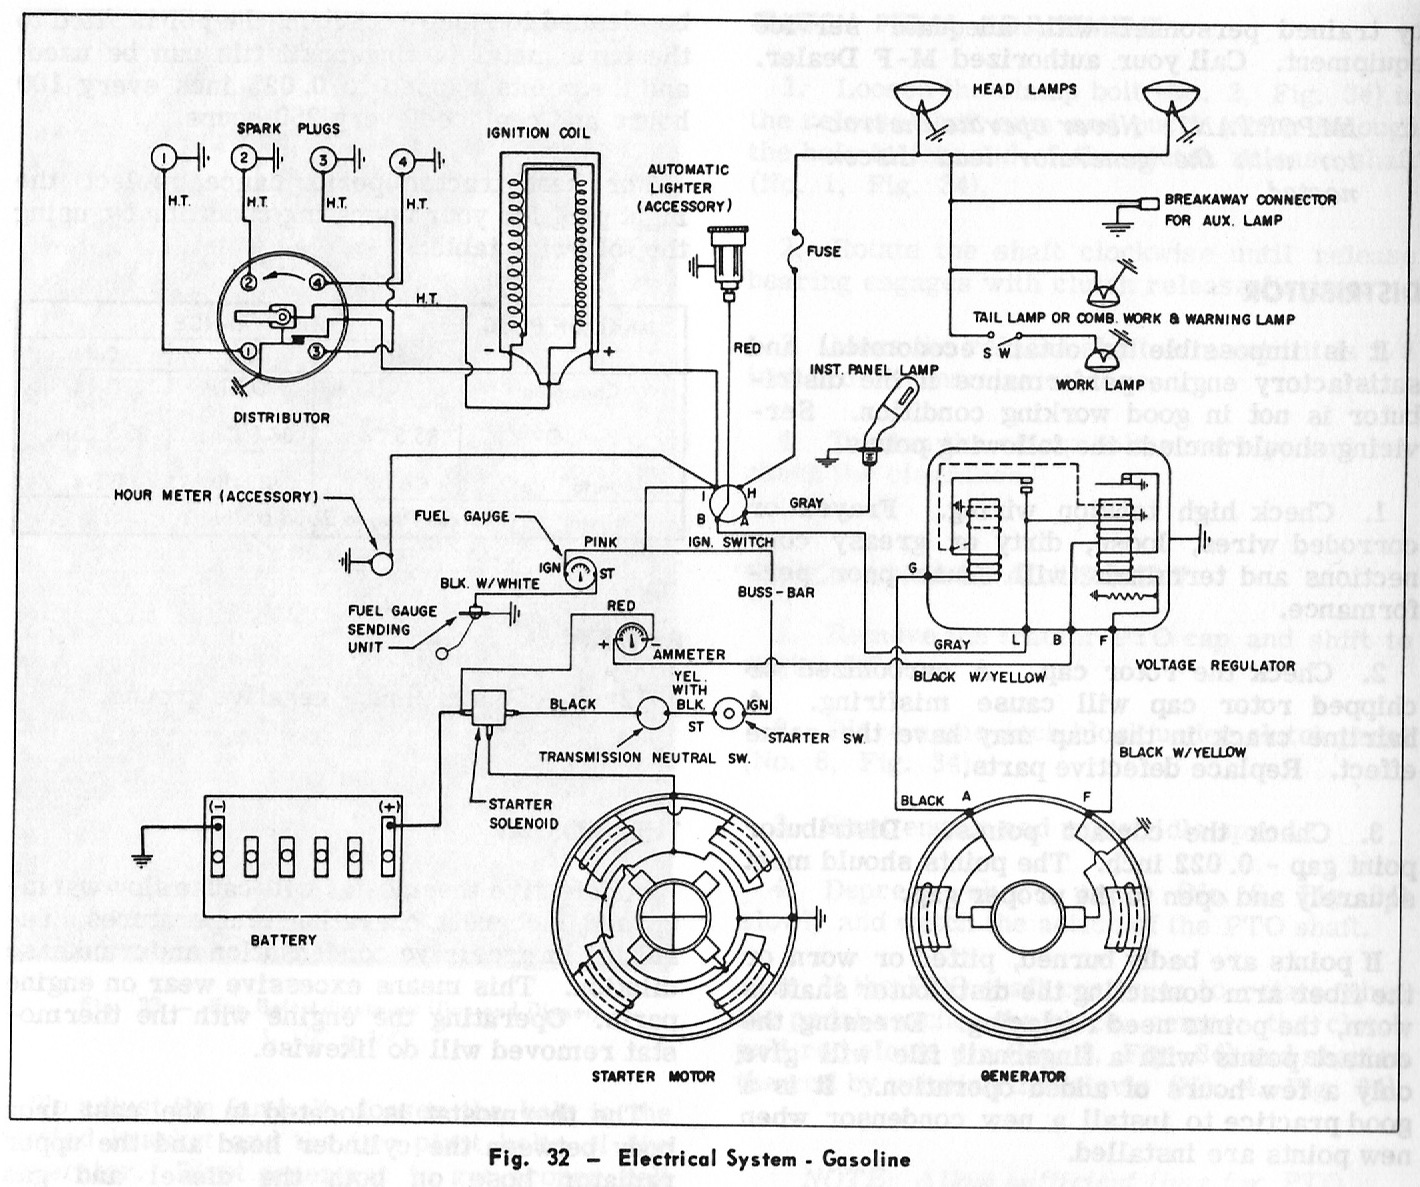 An Idiots Guide To The Massey Ferguson 65 Gas Engine Electrical Diagram Sending Unit Wiring